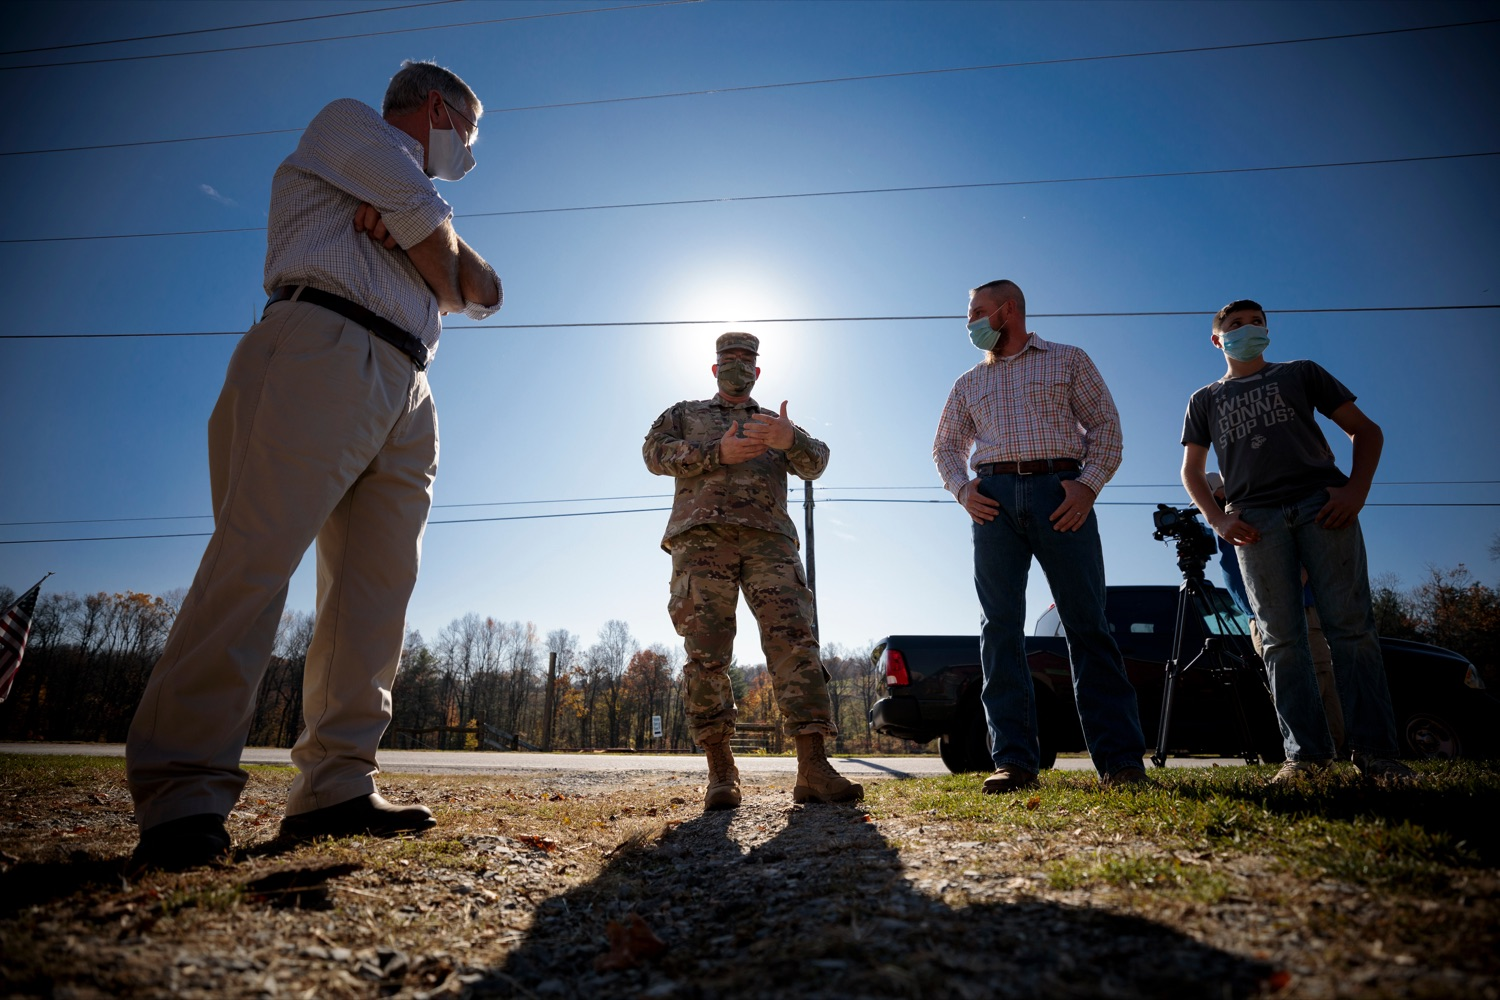 """<a href=""""https://filesource.wostreaming.net/commonwealthofpa/photo/18388_AGRIC_Veteran_Farmers_NK_005.jpg"""" target=""""_blank"""">⇣Download Photo<br></a>U.S. Marine Corps Veteran Daniel Hubbard, center right, stands with his son Lane, 12, right, as they talk with Anthony J. Carrelli, Pennsylvanias adjutant general and head of the Department of Military and Veterans Affairs, center left, and Agriculture Secretary Russell Redding on Hubbard's Family Ranch in Adams County on Friday, November 6, 2020. Hubbard's Family Ranch received grants in September through the states $10 million Fresh Food Financing Initiative COVID-19 Relief Fund to expand access to fresh food in low-income communities during the pandemic."""